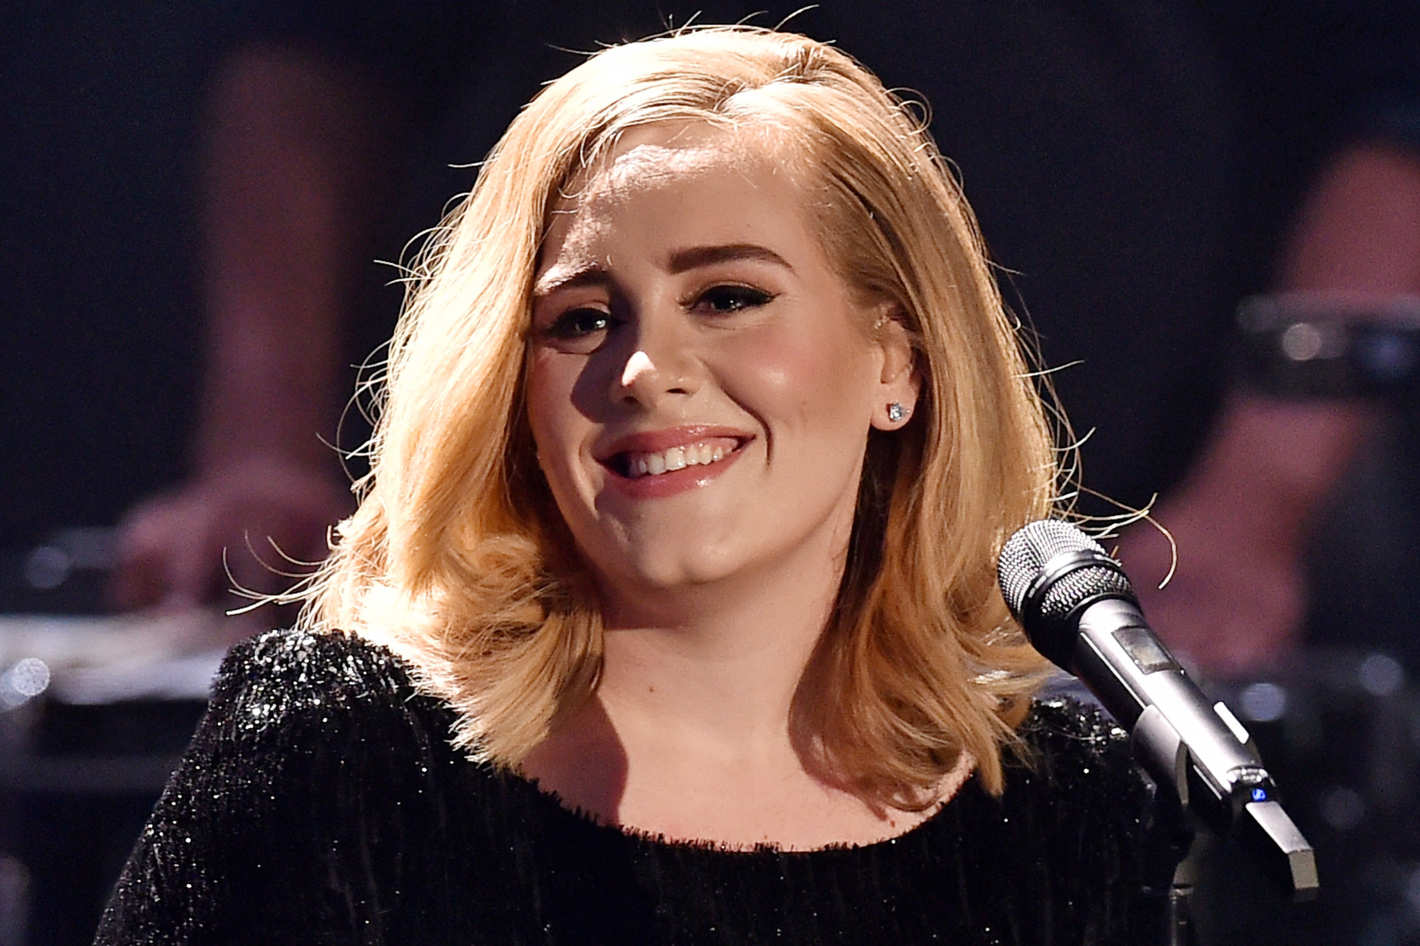 When Adele Was Young She Just Cute Little Toothless Adkins As Seen On Her New Single Art